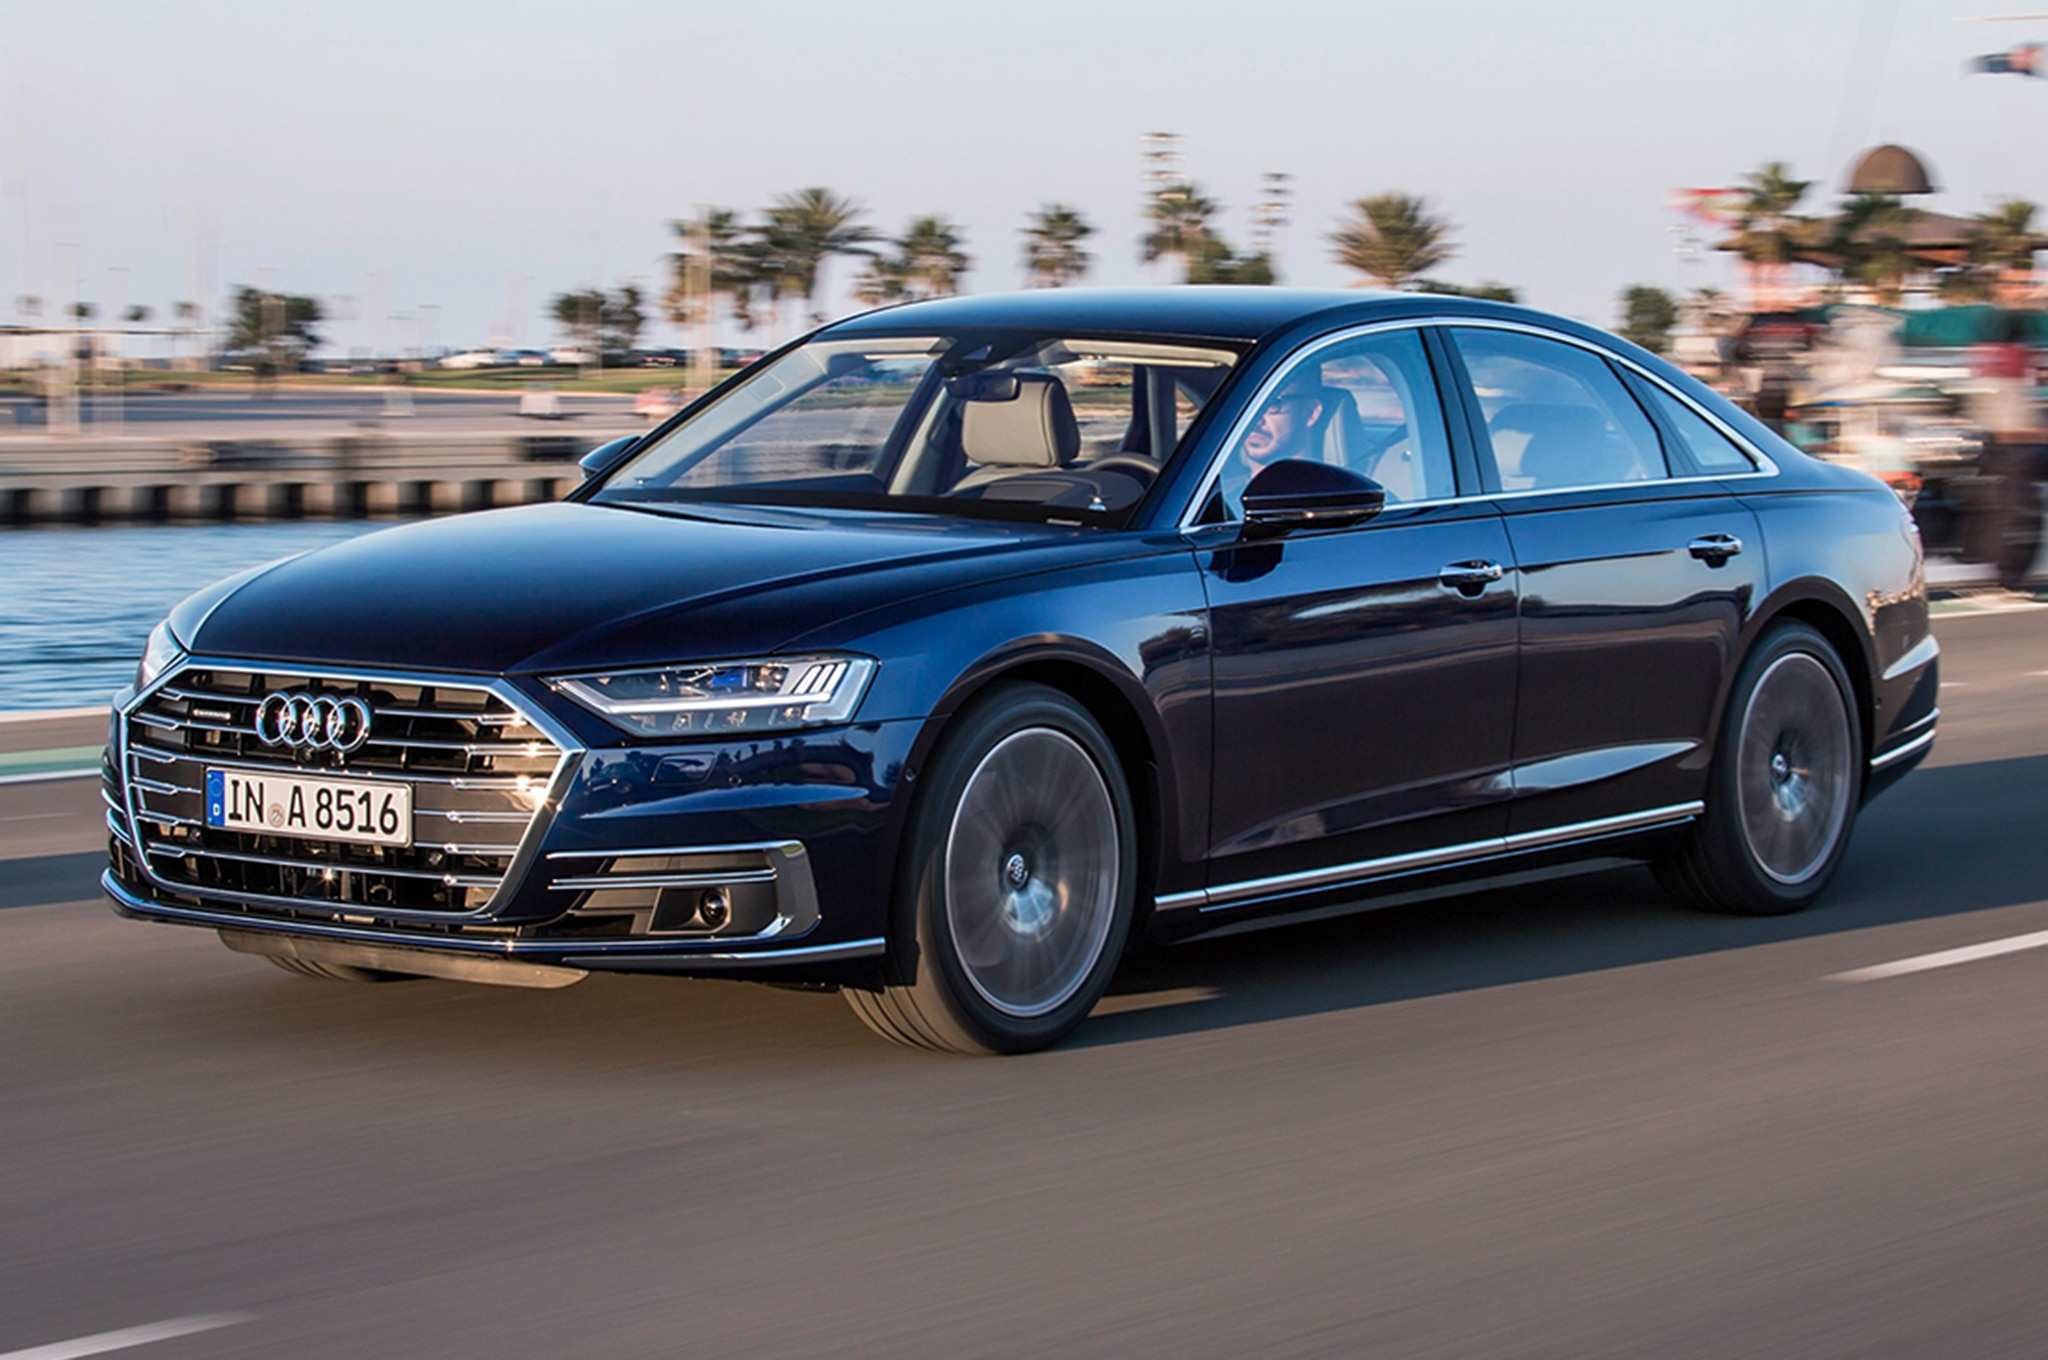 84 Best Review 2019 Audi Price Research New with 2019 Audi Price